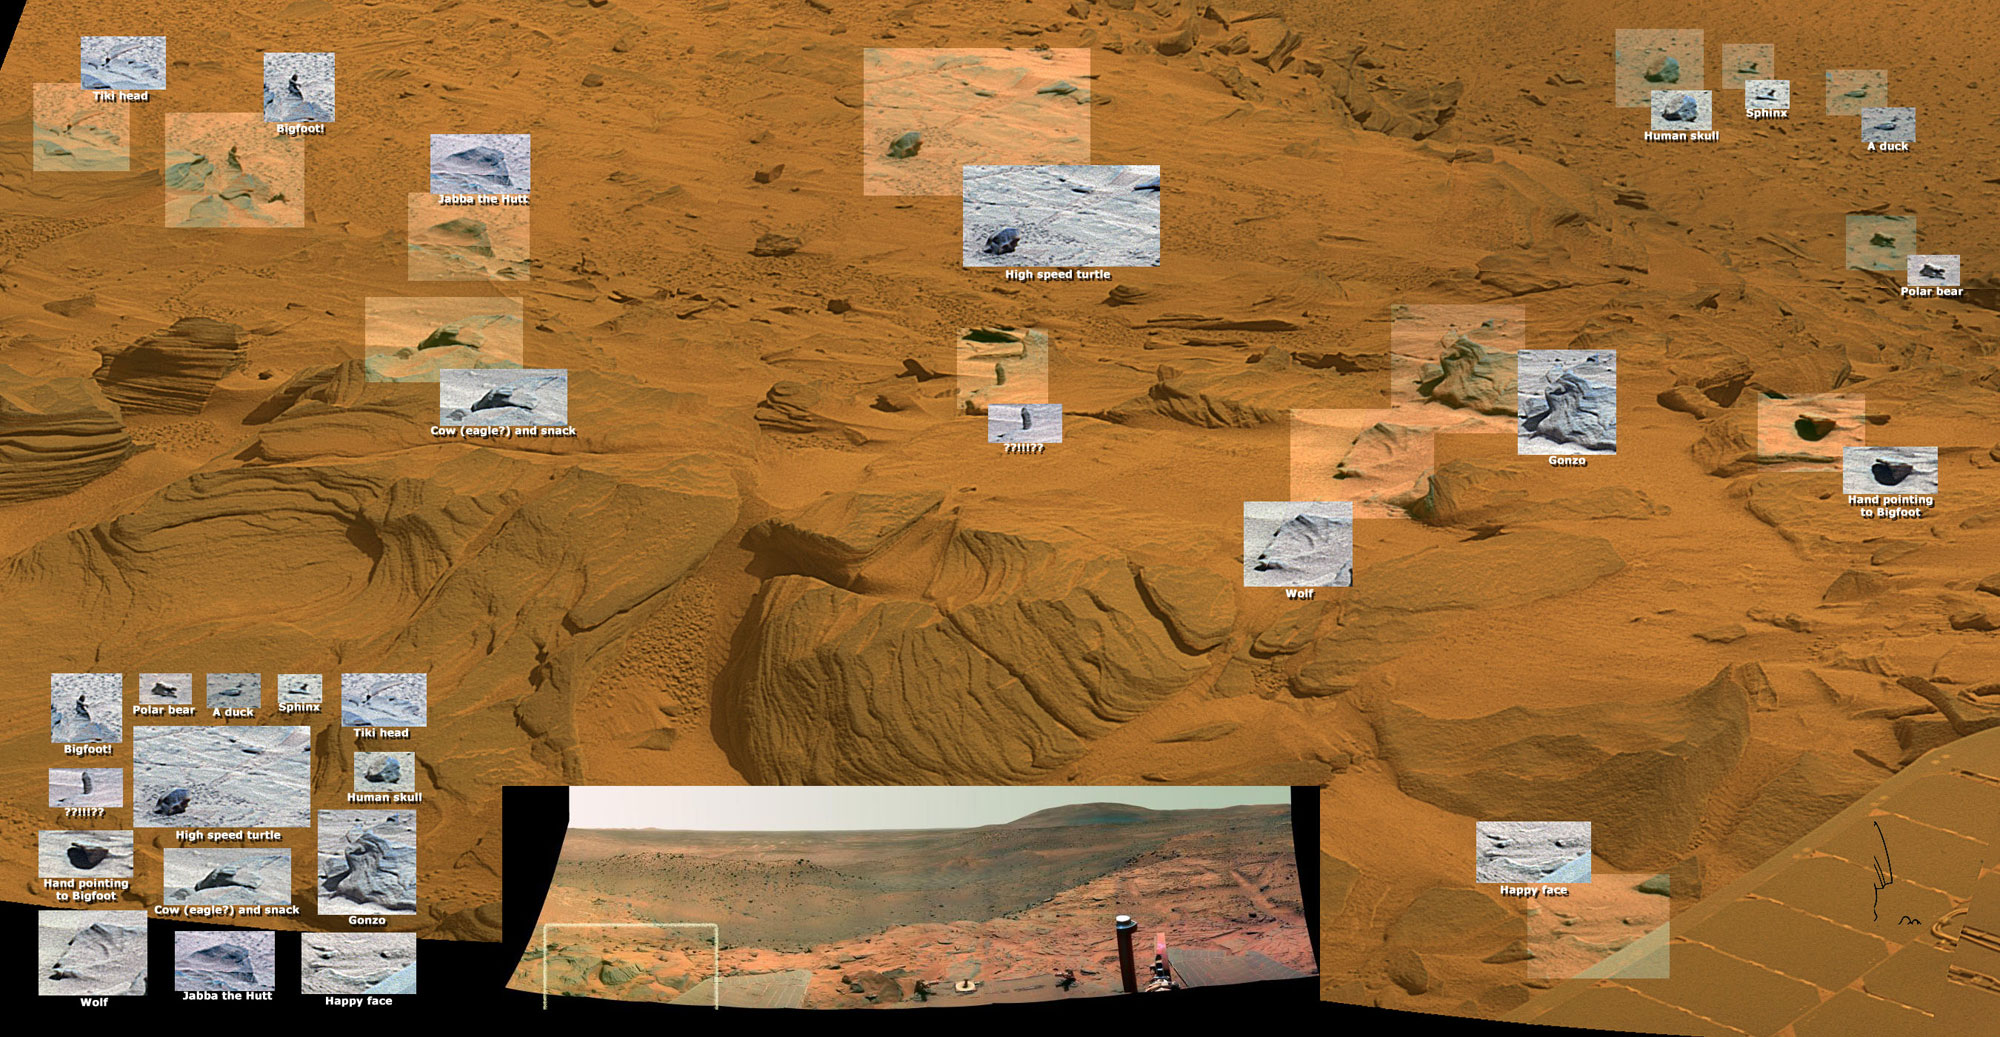 Research paper on life on mars